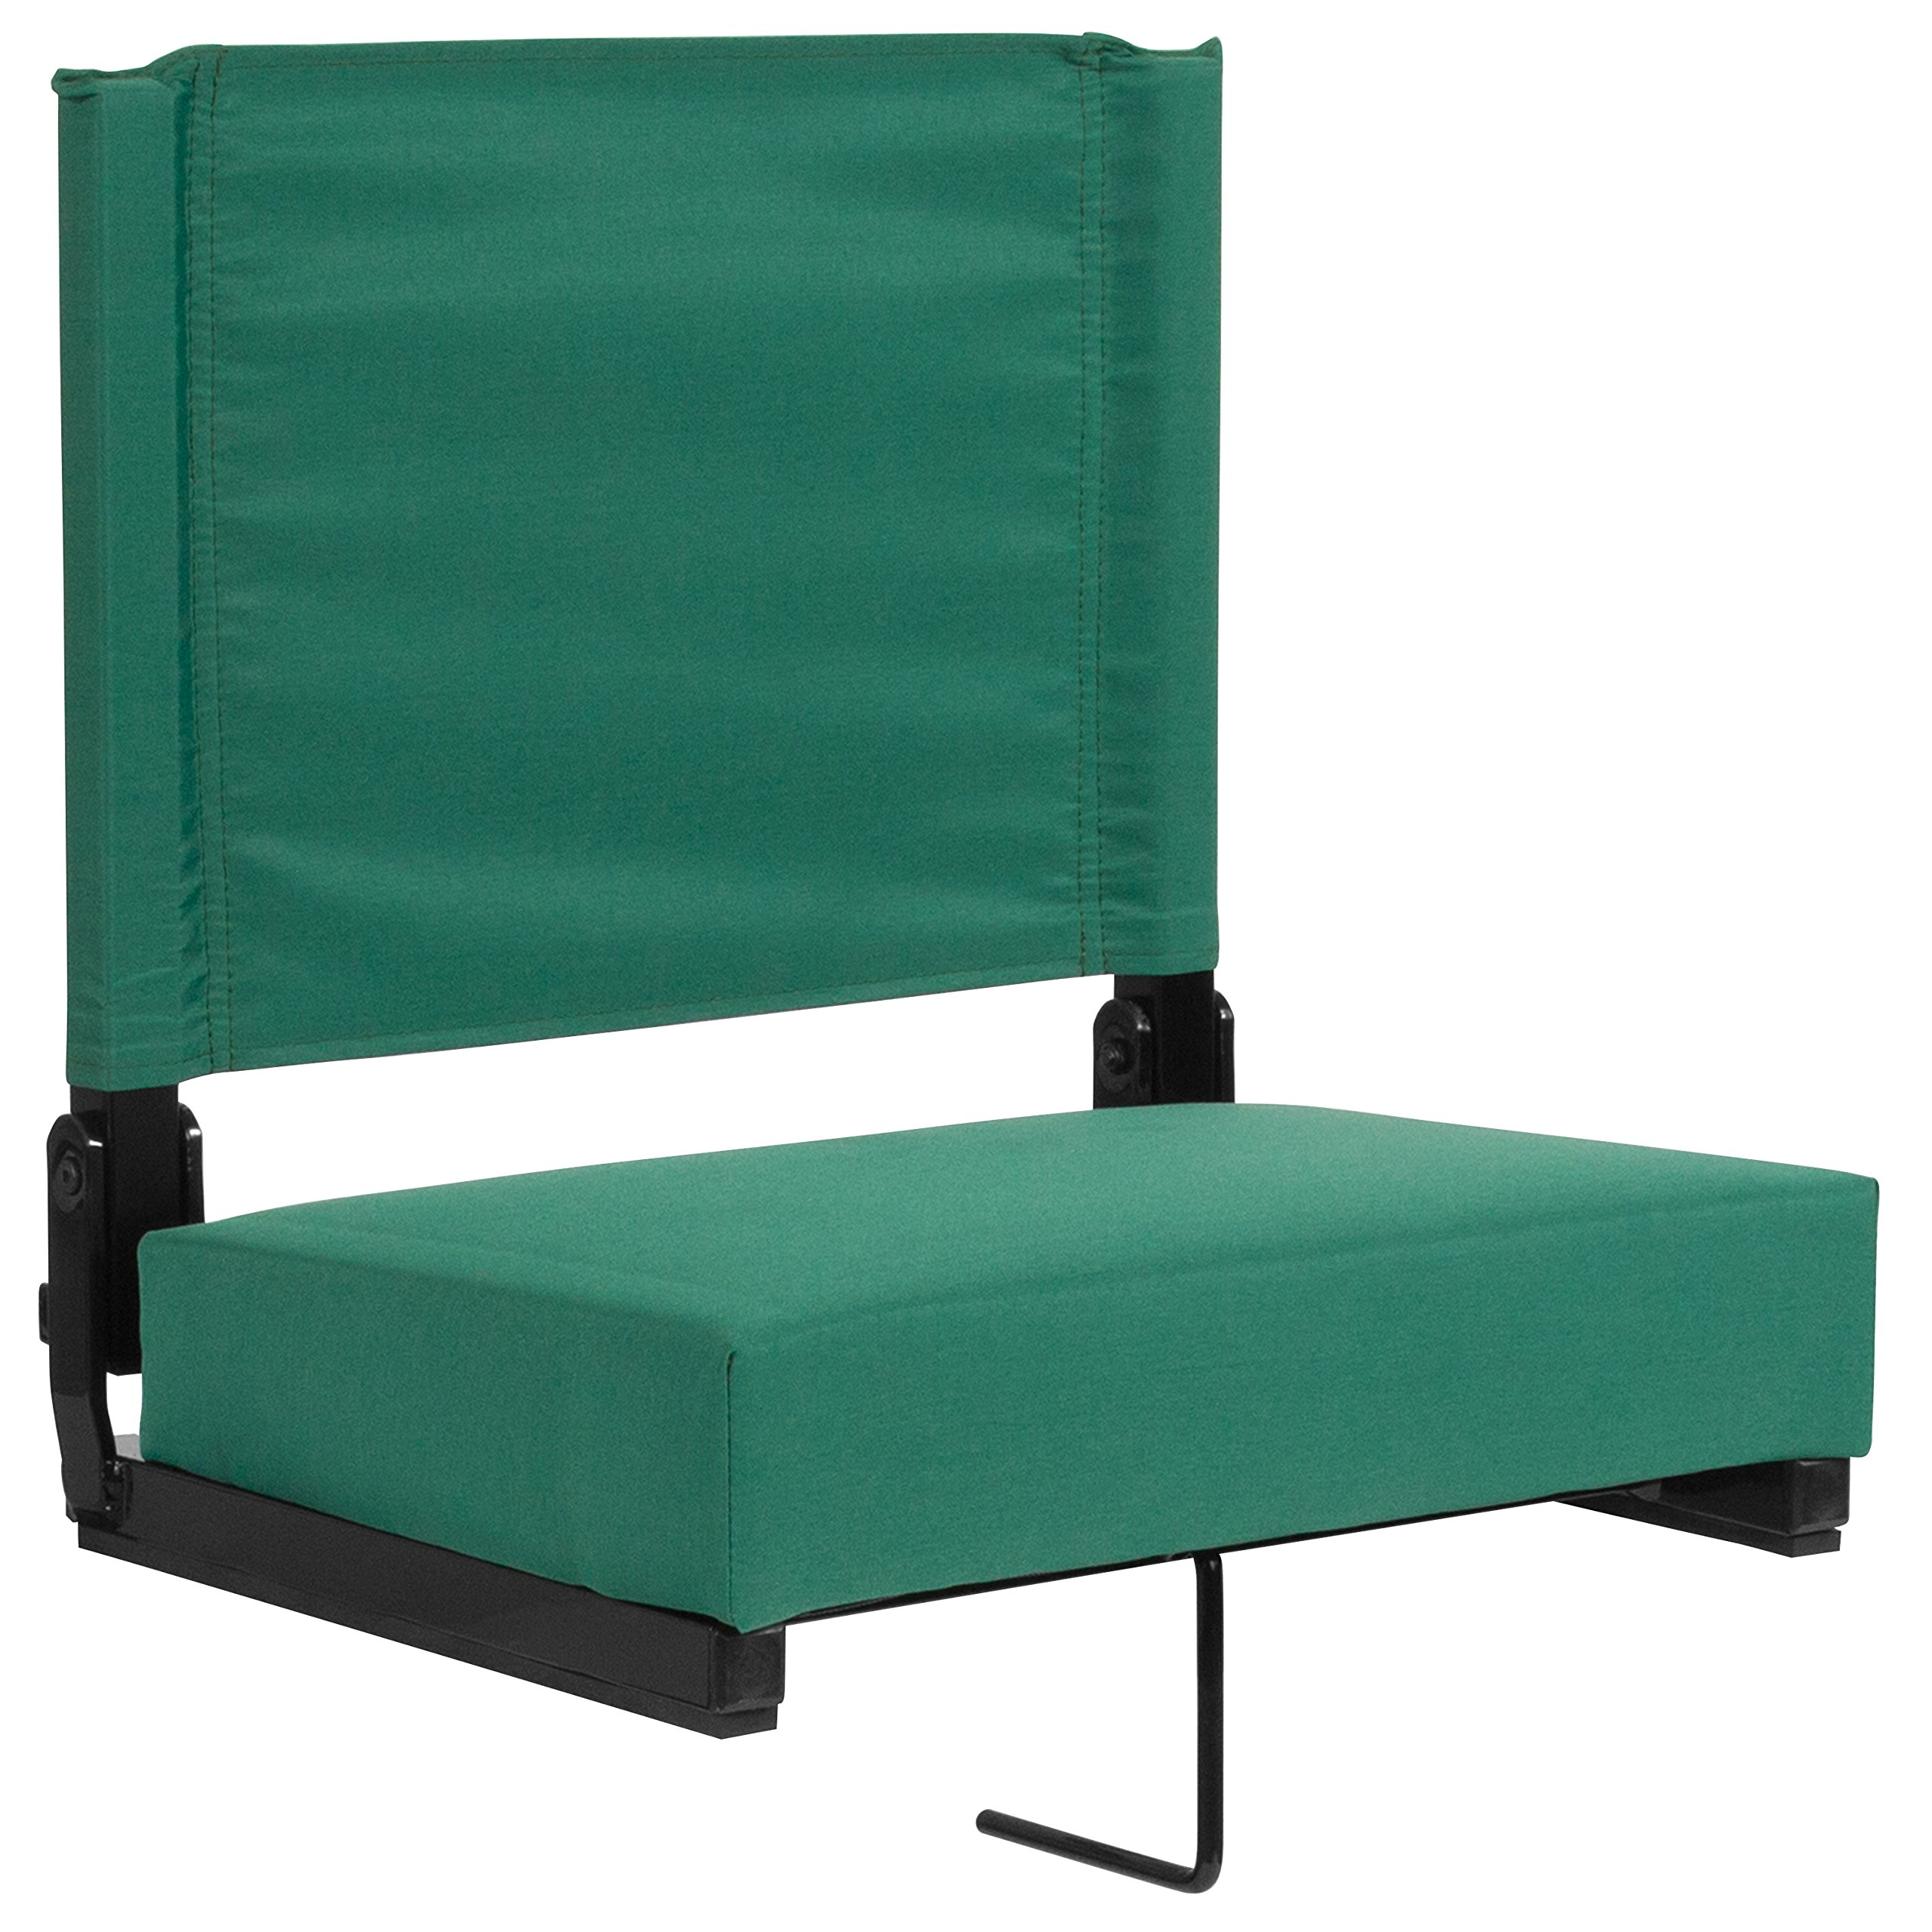 Flash Furniture Grandstand Comfort Seats by Flash with Ultra-Padded Seat in Hunter Green by Flash Furniture